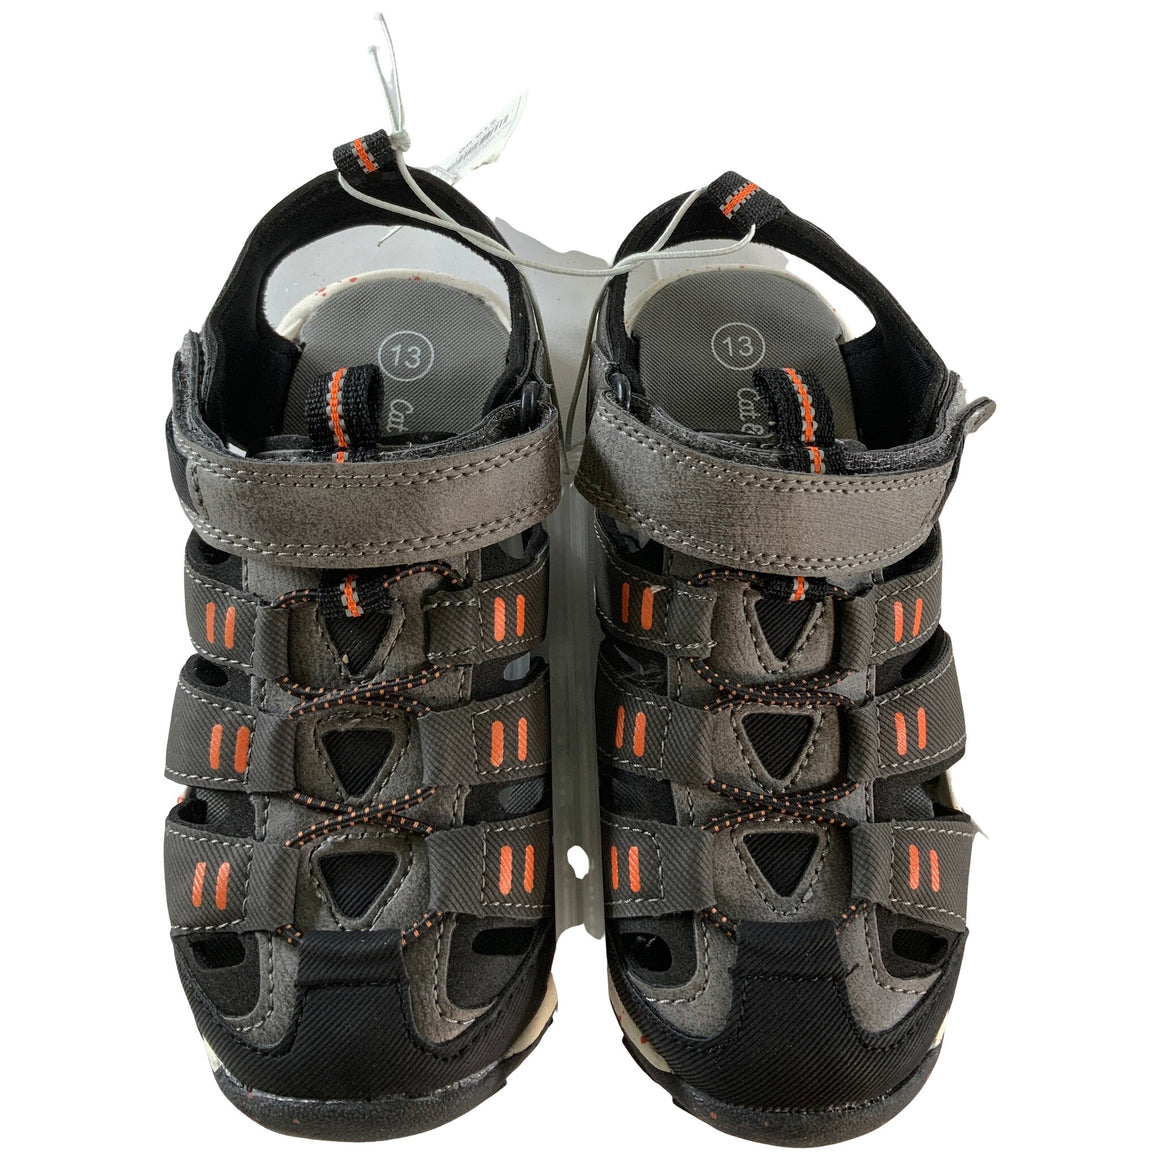 Boys' Lowell Hiking Sandals - Charcoal 13 - Cat & Jack™